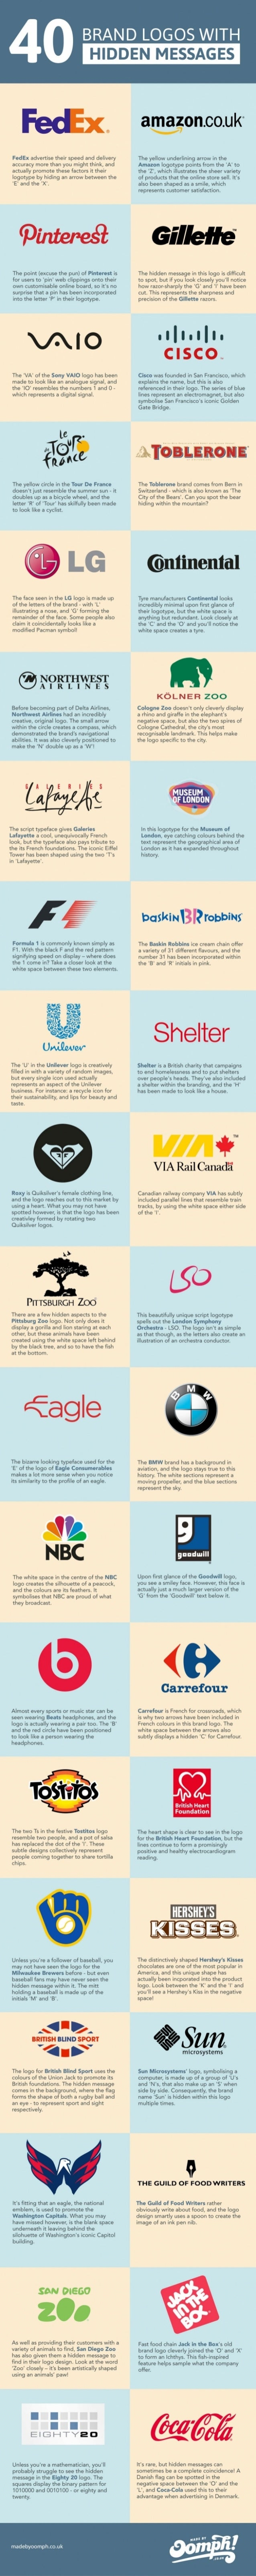 40 logos-with-hidden-messages